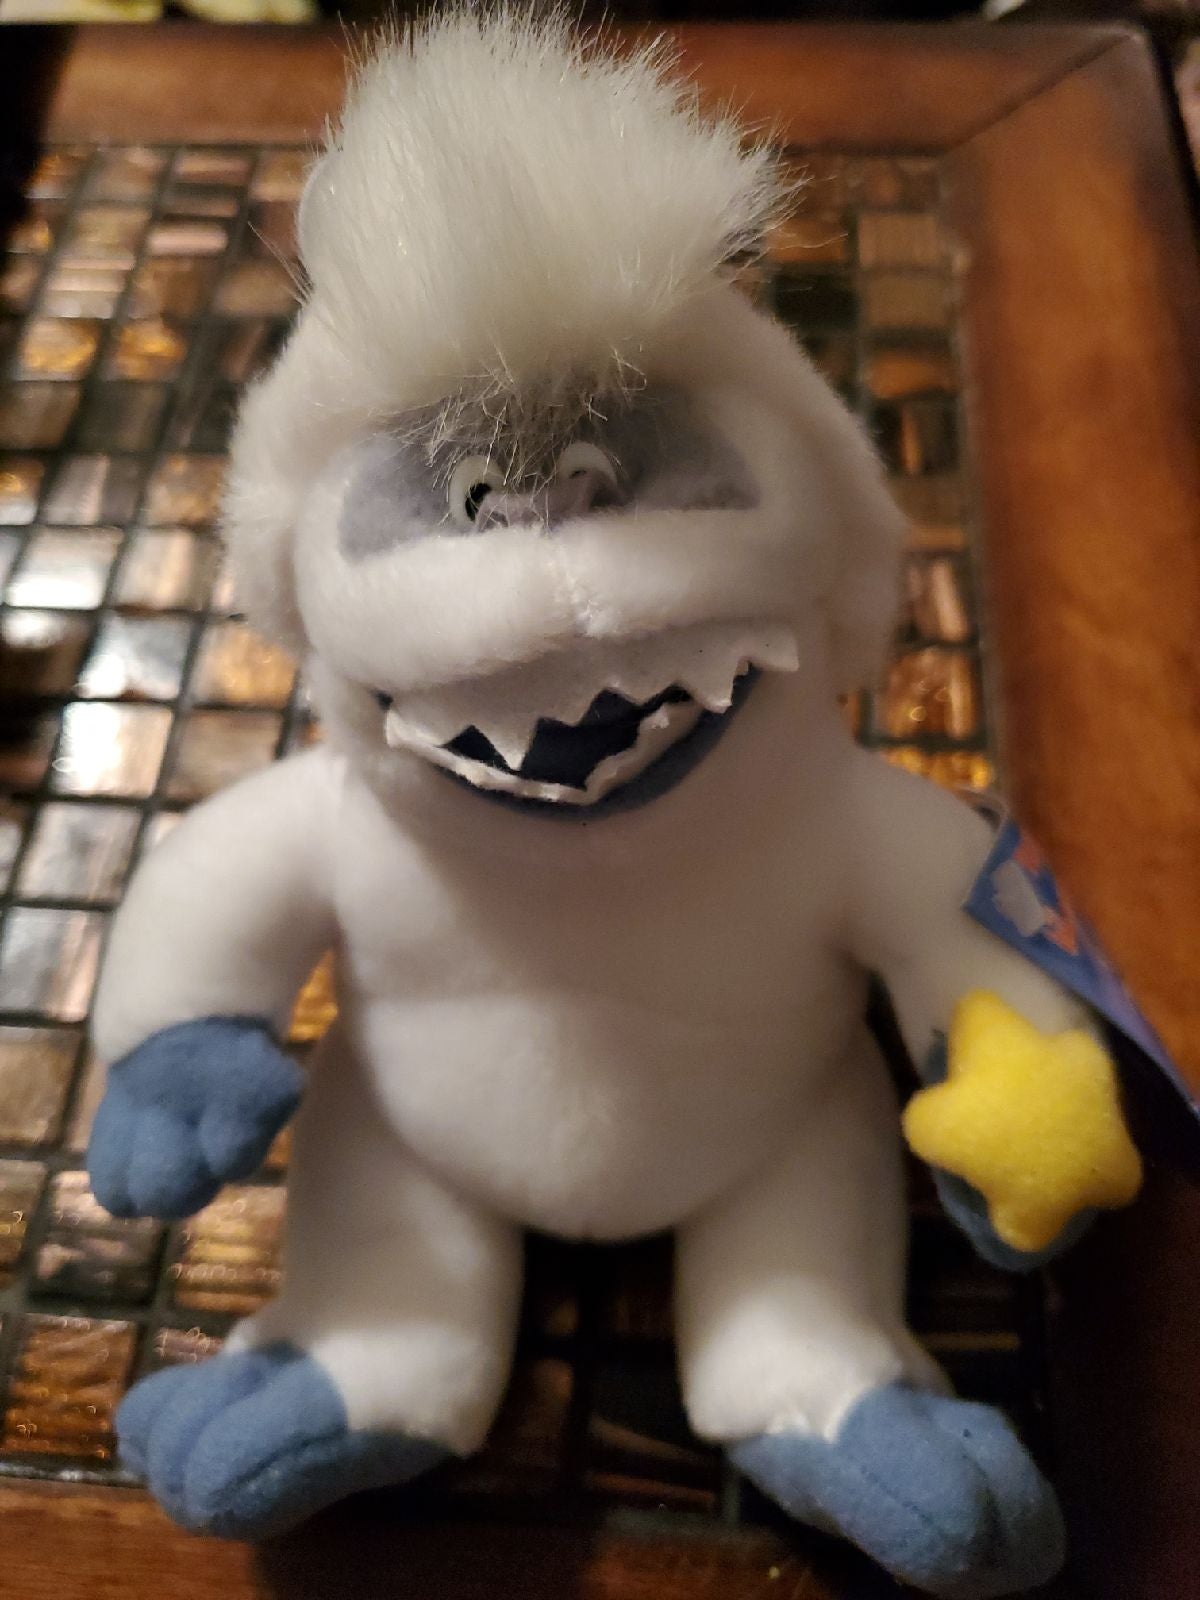 Bumble the abominable snowman